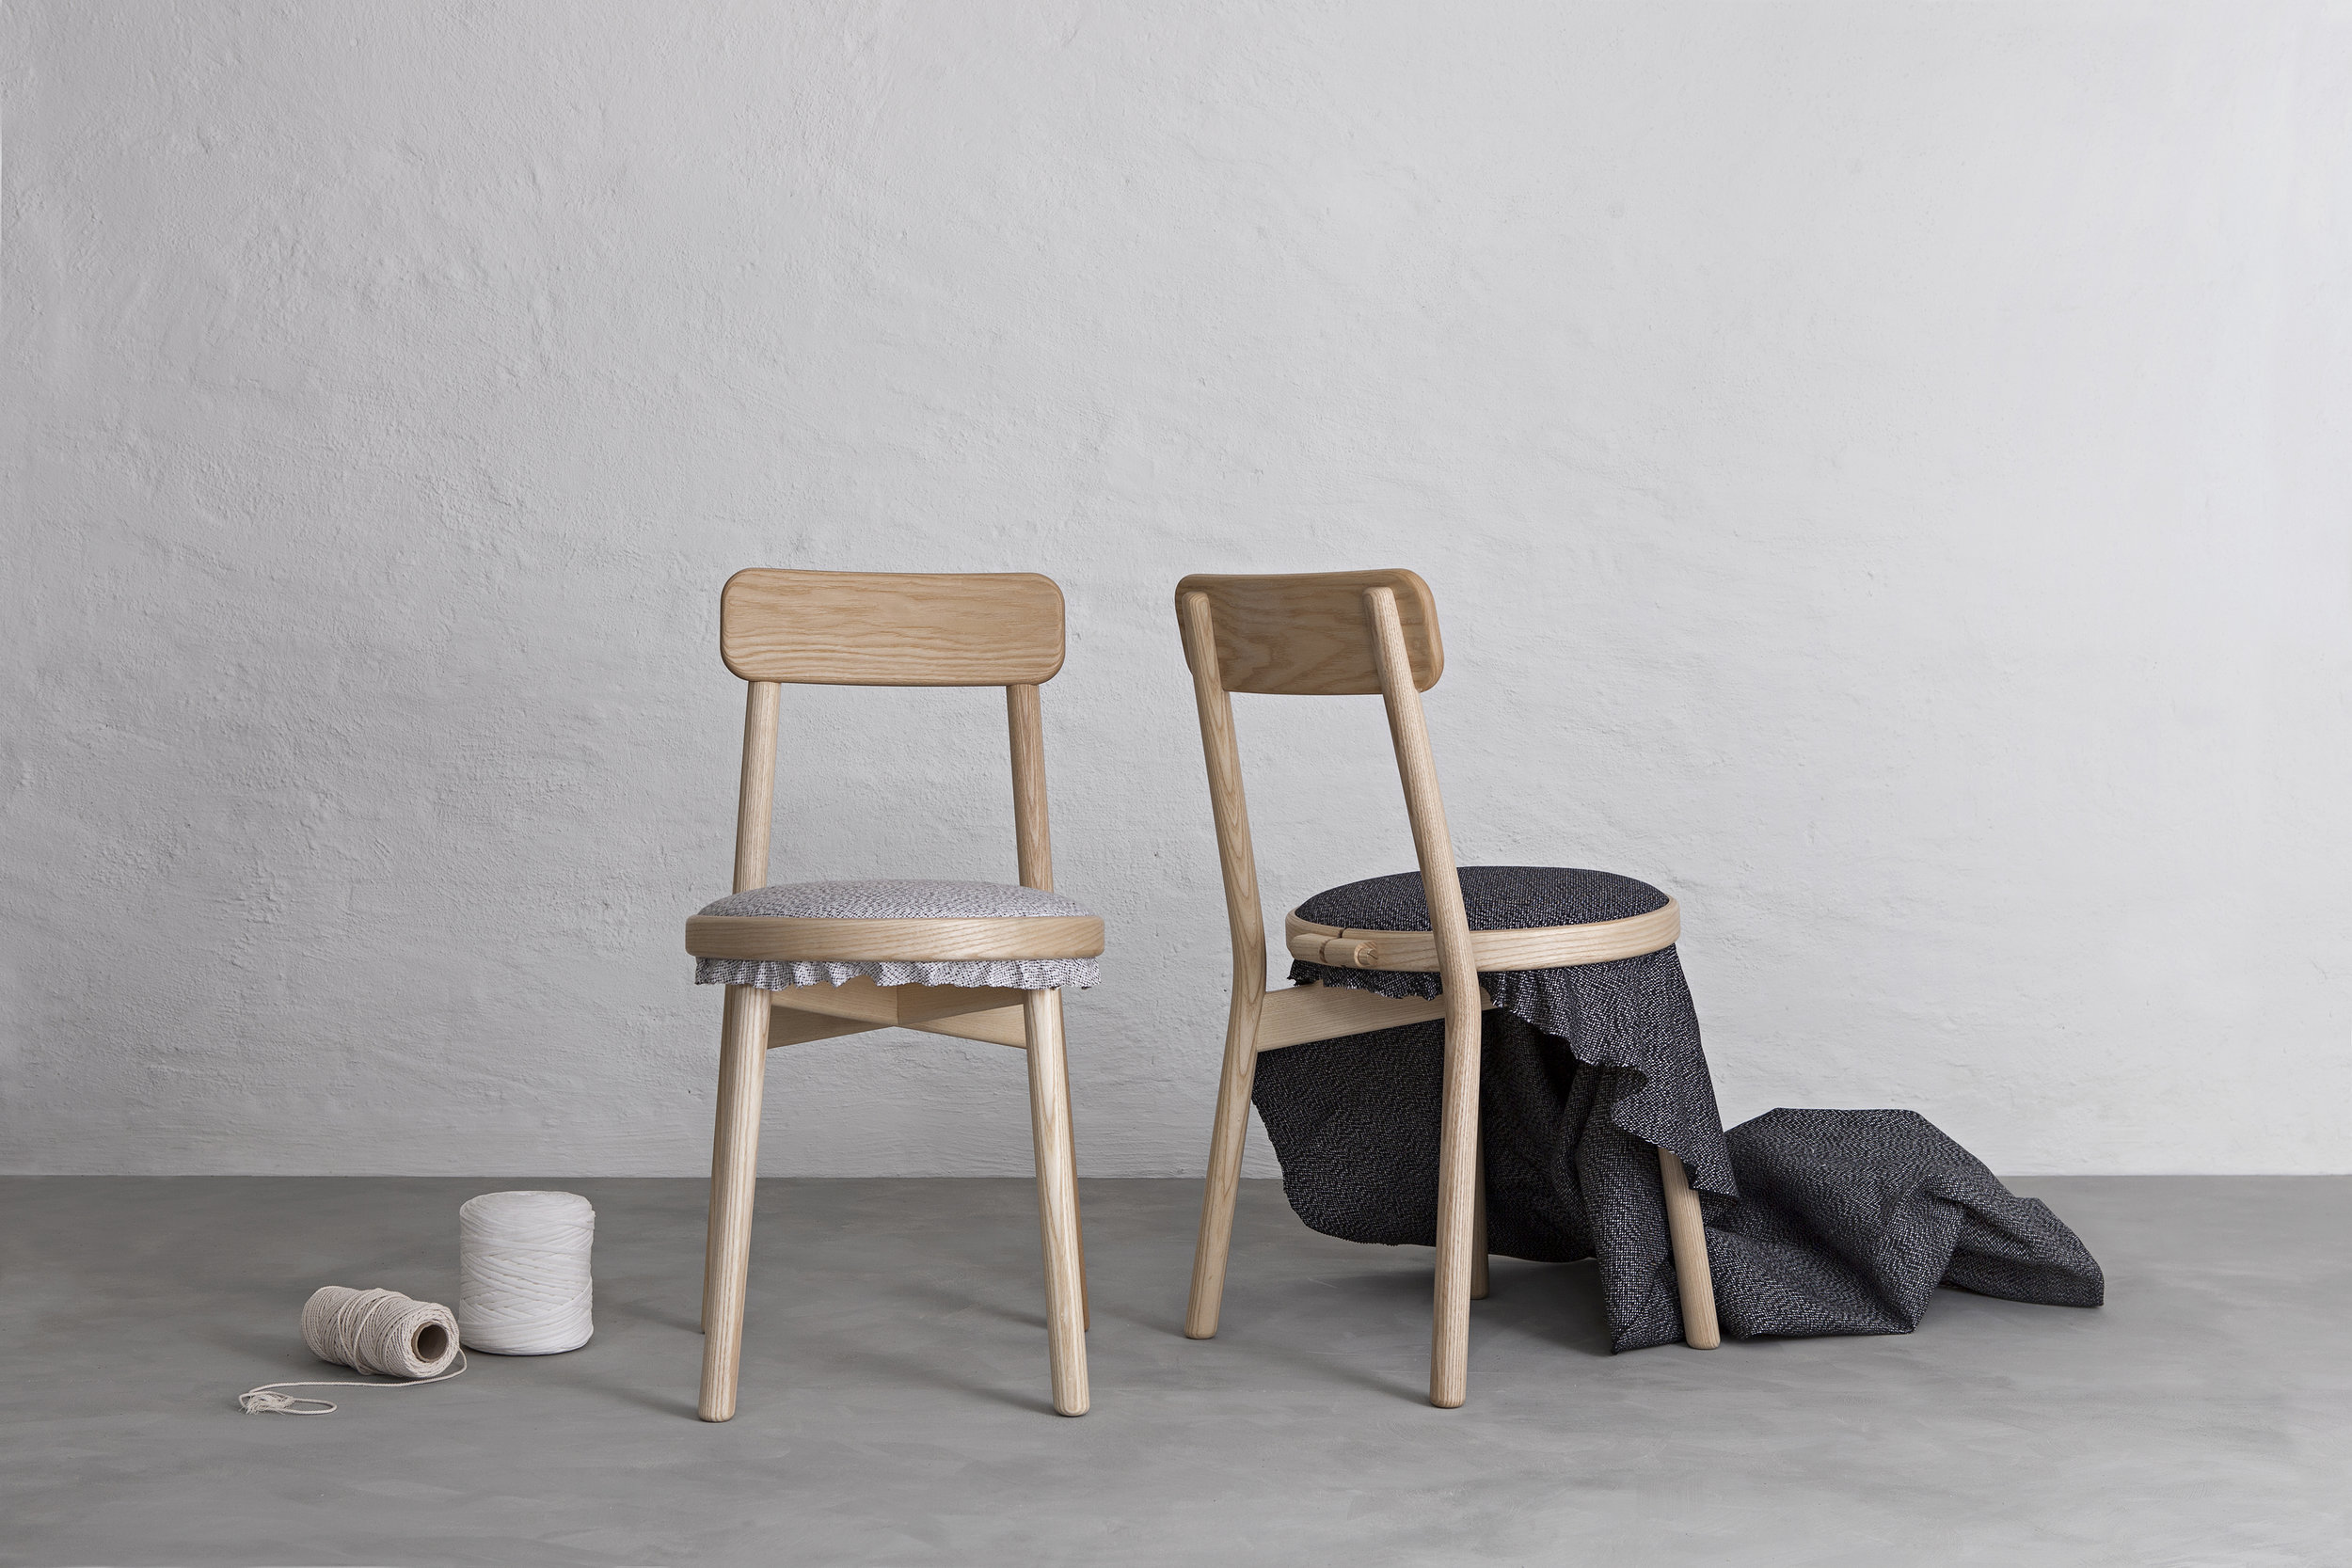 Stoft Studio R-evolve Exhibition Stockholm Design Week